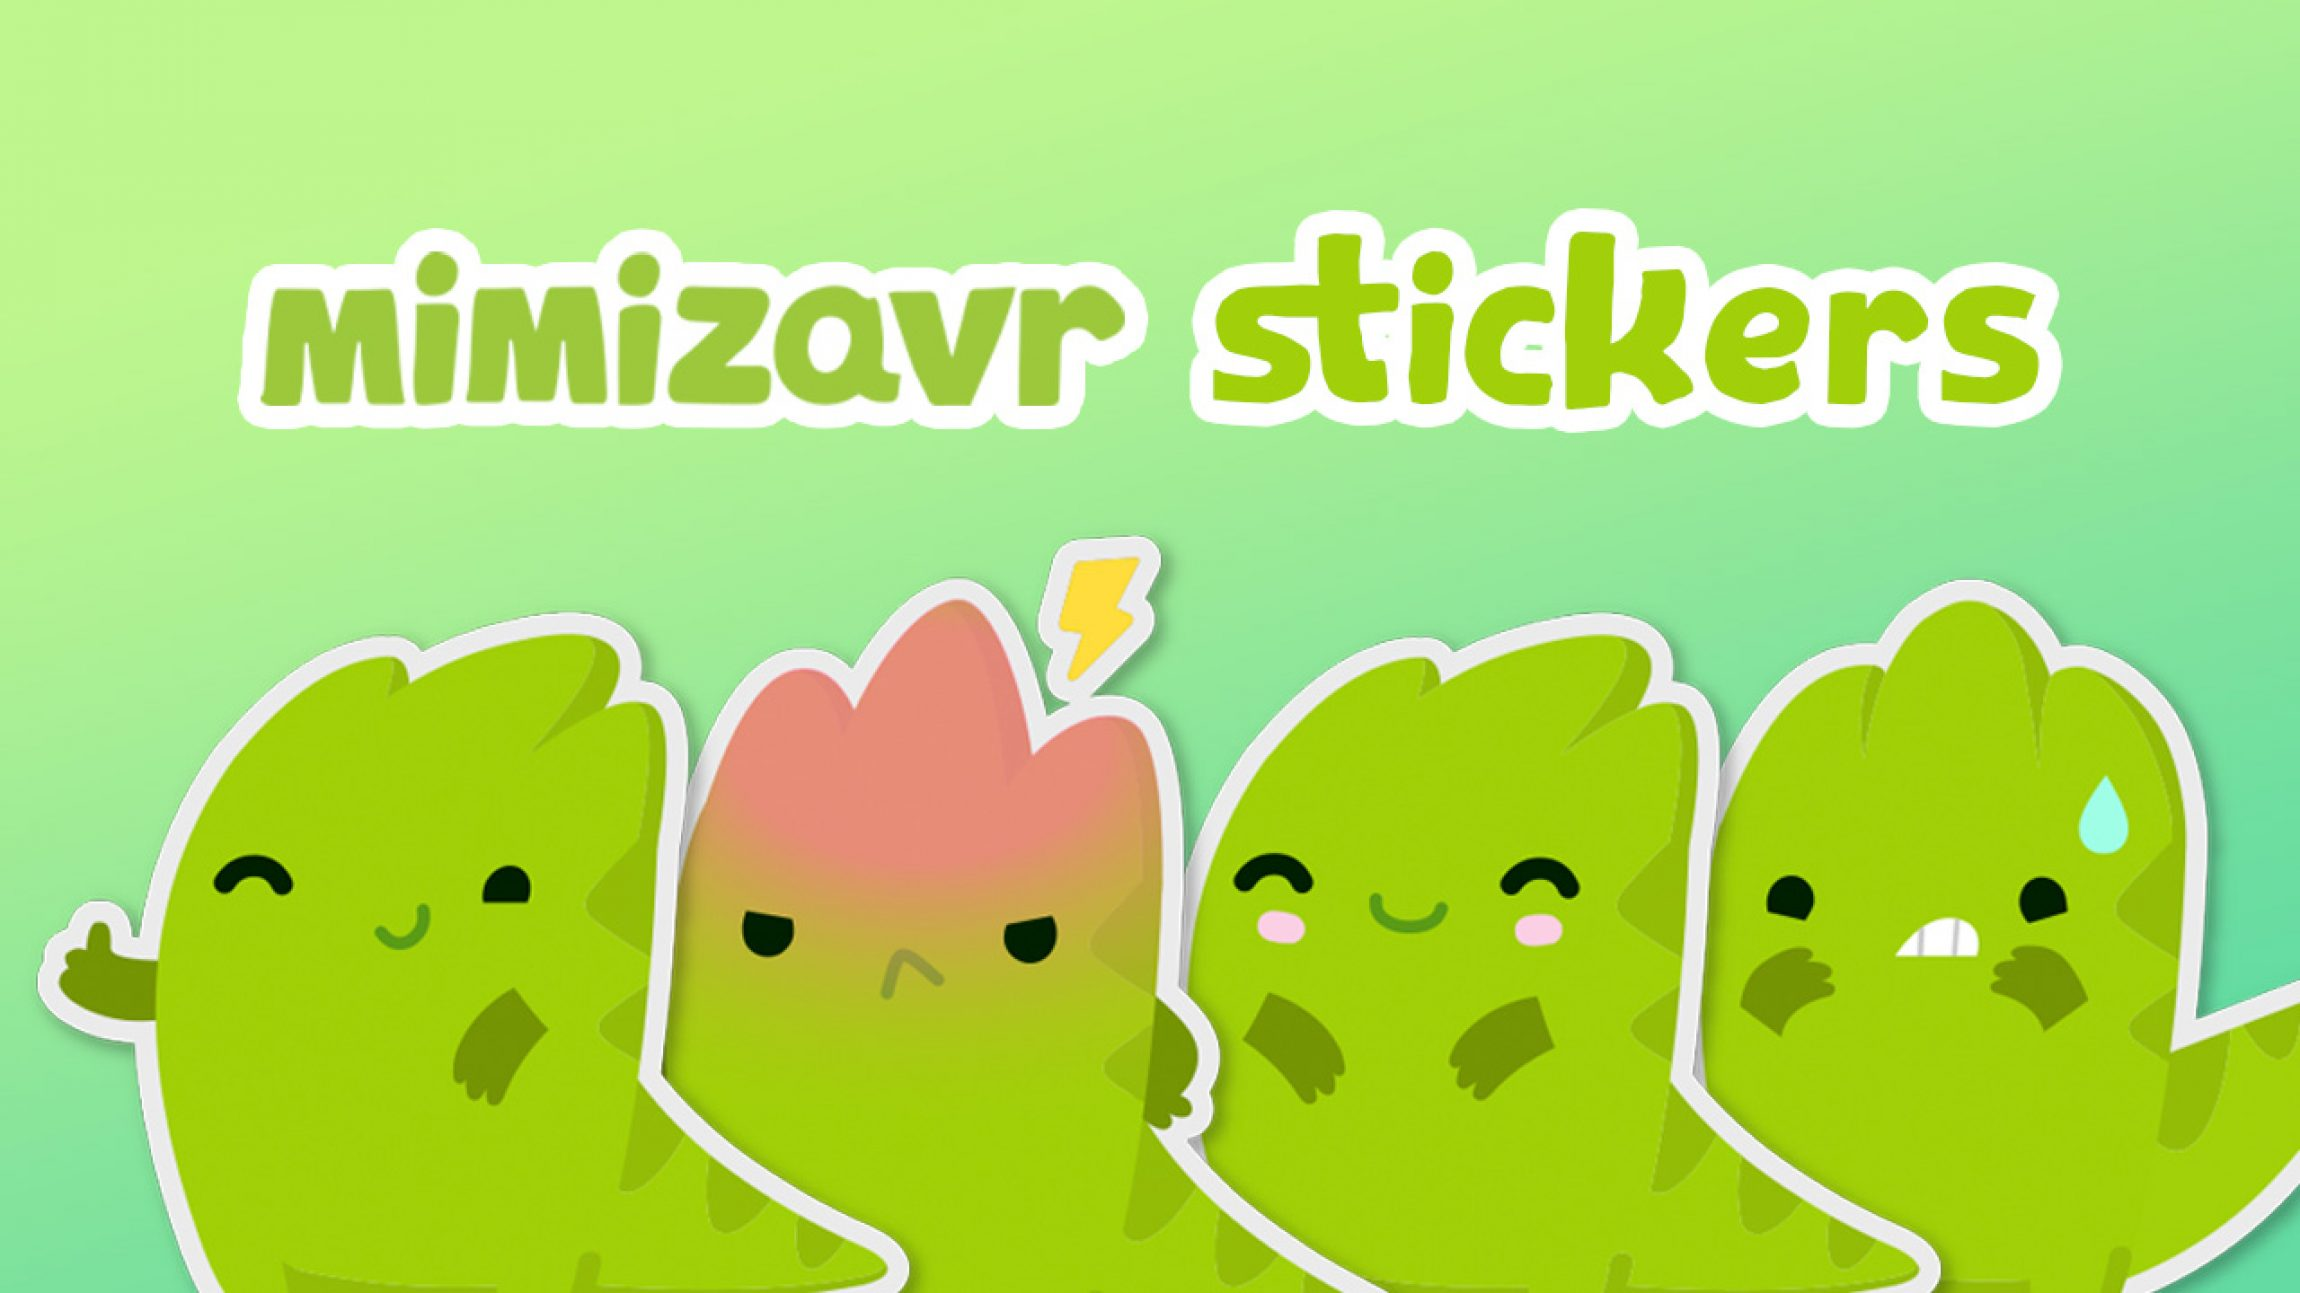 Mimizavr stickers is coming soon